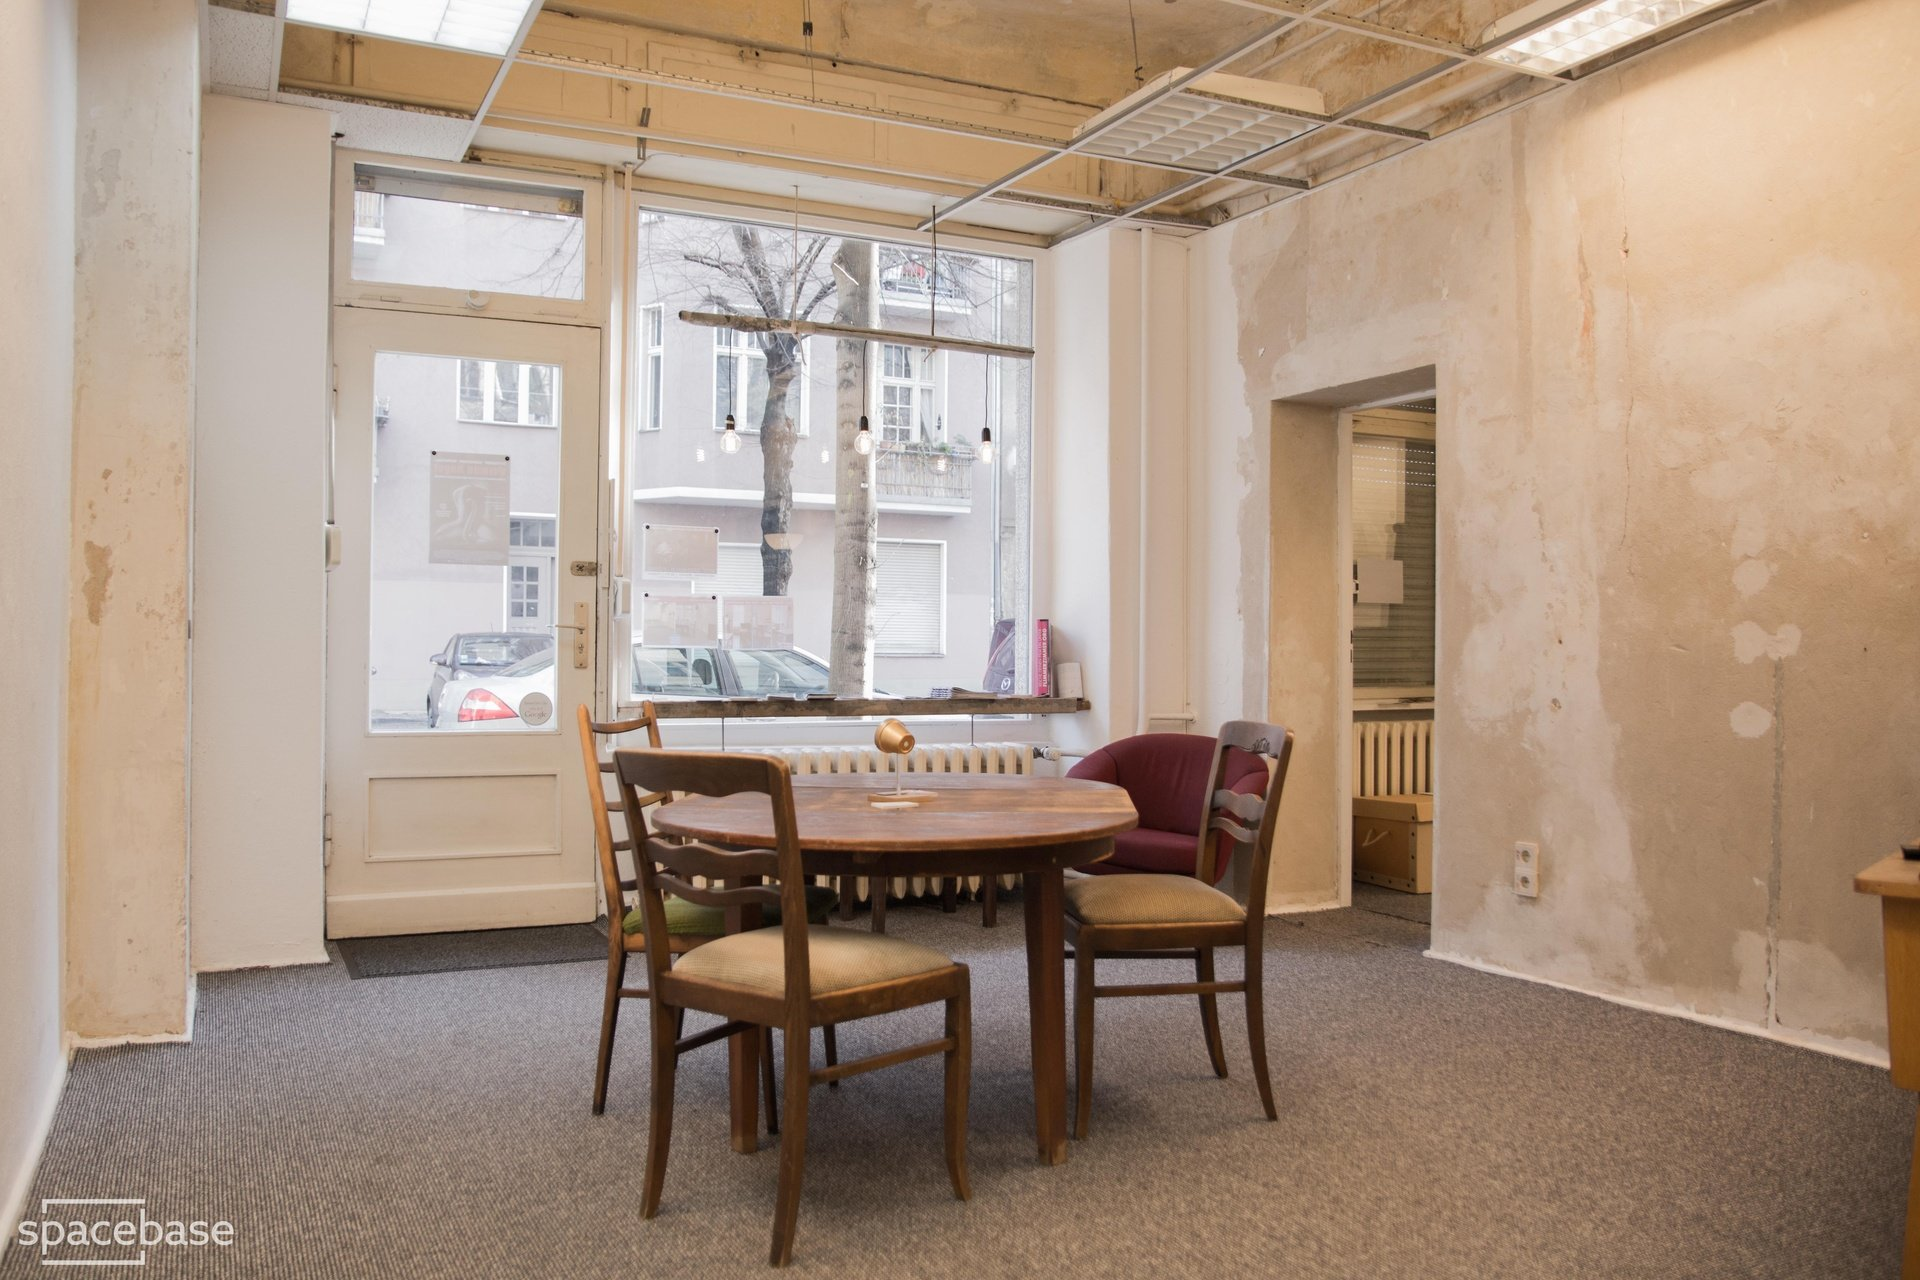 Berlin conference rooms Coworking Space creative office image 0